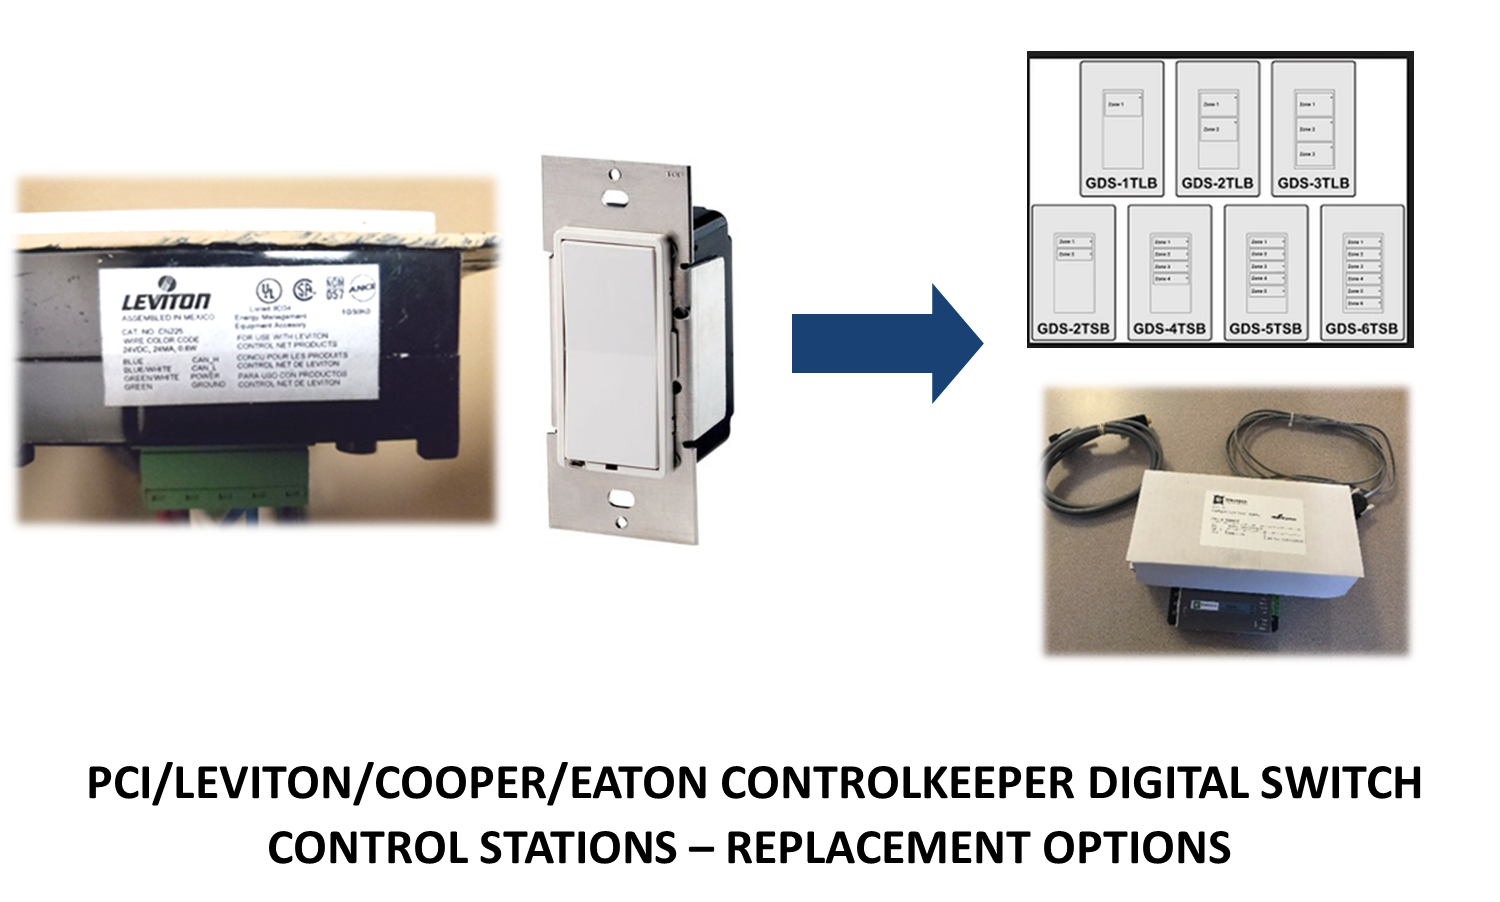 PCI/LEVITON/COOPER/EATON ControlKeeper Digital Switch Control Stations – Replacement Options